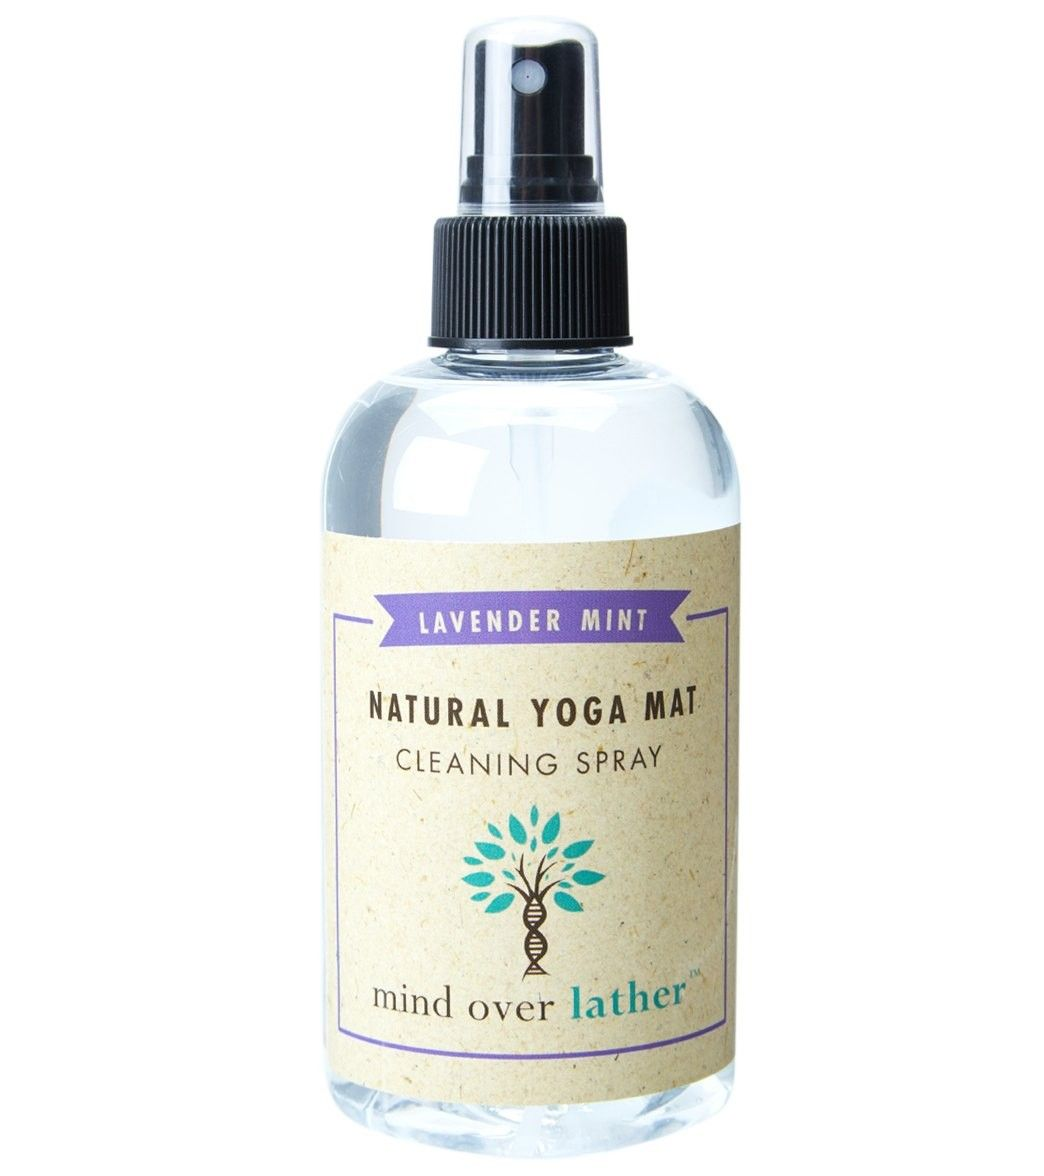 Pin by Lisa Tamisin on Be FIT Yoga mat cleaner